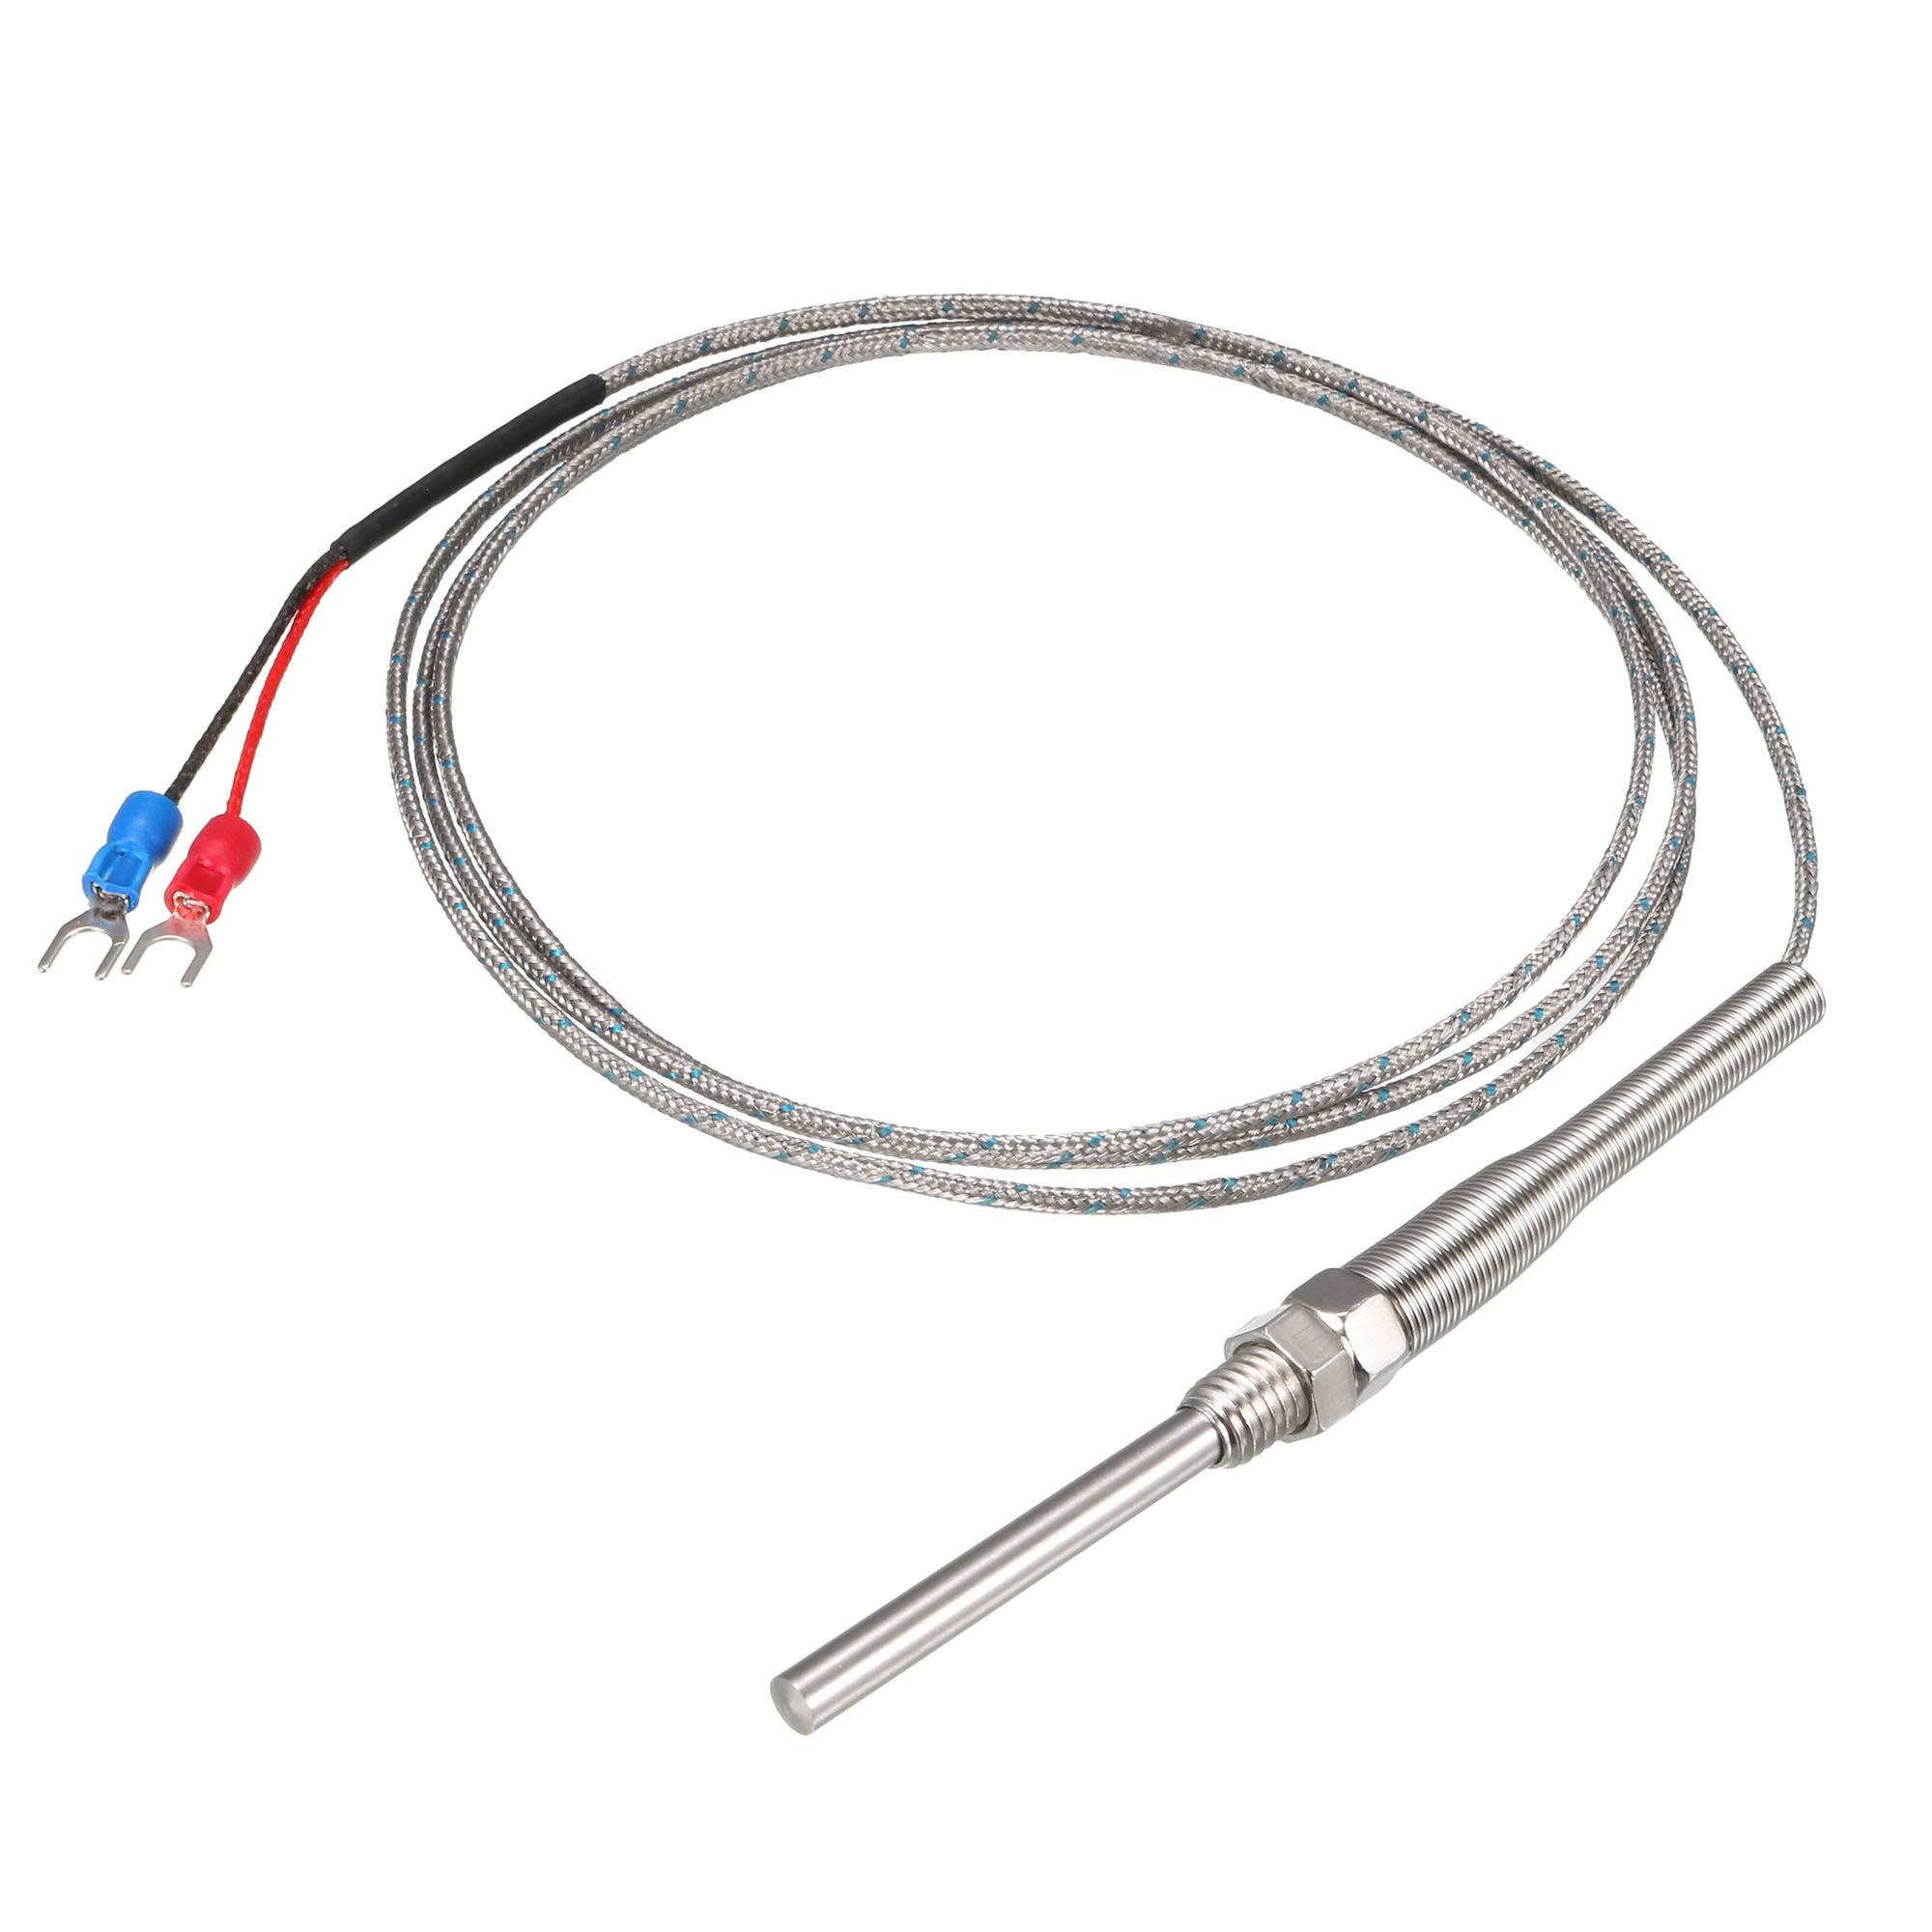 k type thermocouple spring type temperature sensor probe 1 5m cable 5x40mm